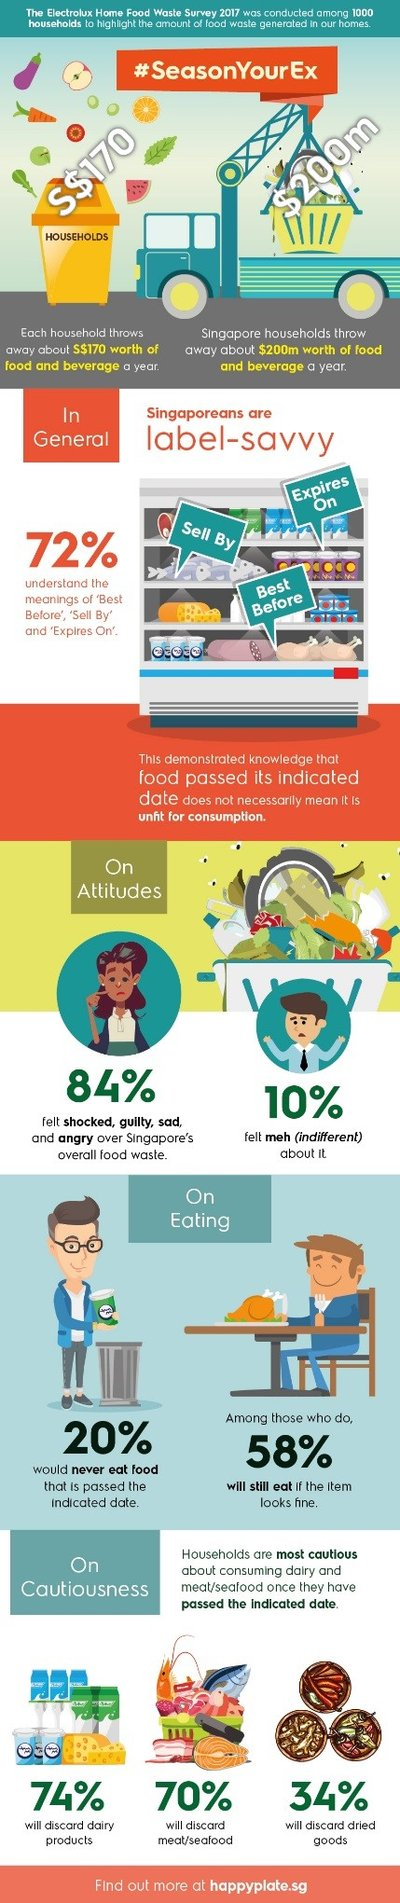 The Electrolux Home Food Waste Survey 2017